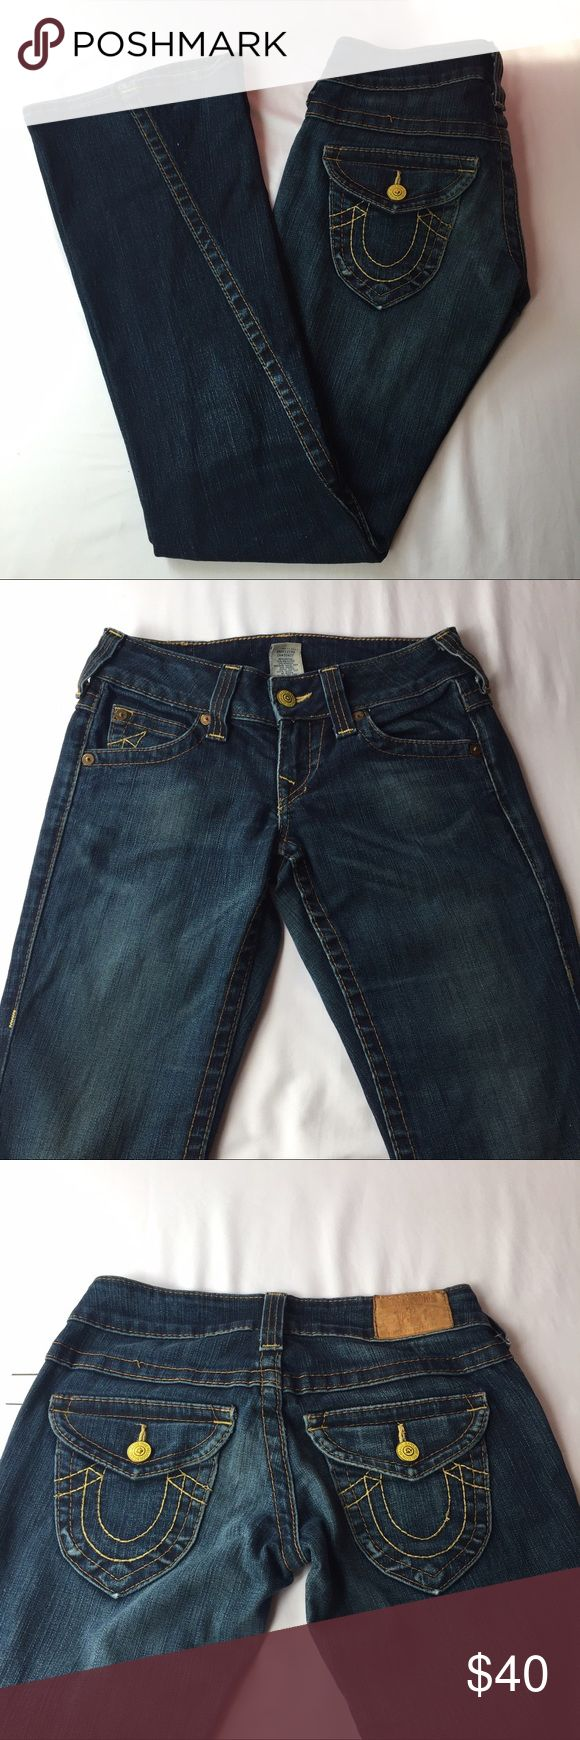 🆕 True Religion Denim Flare Jeans, Size 27 Awesome True Religion Denim Flare Jeans, Size 27. Flare is making a HUGE comeback and these jeans will definitely help complete that hippy/boho look that's so hot right now 😍 In excellent condition, no defects and coems from a smoke/pet-free home. True Religion Jeans Flare & Wide Leg